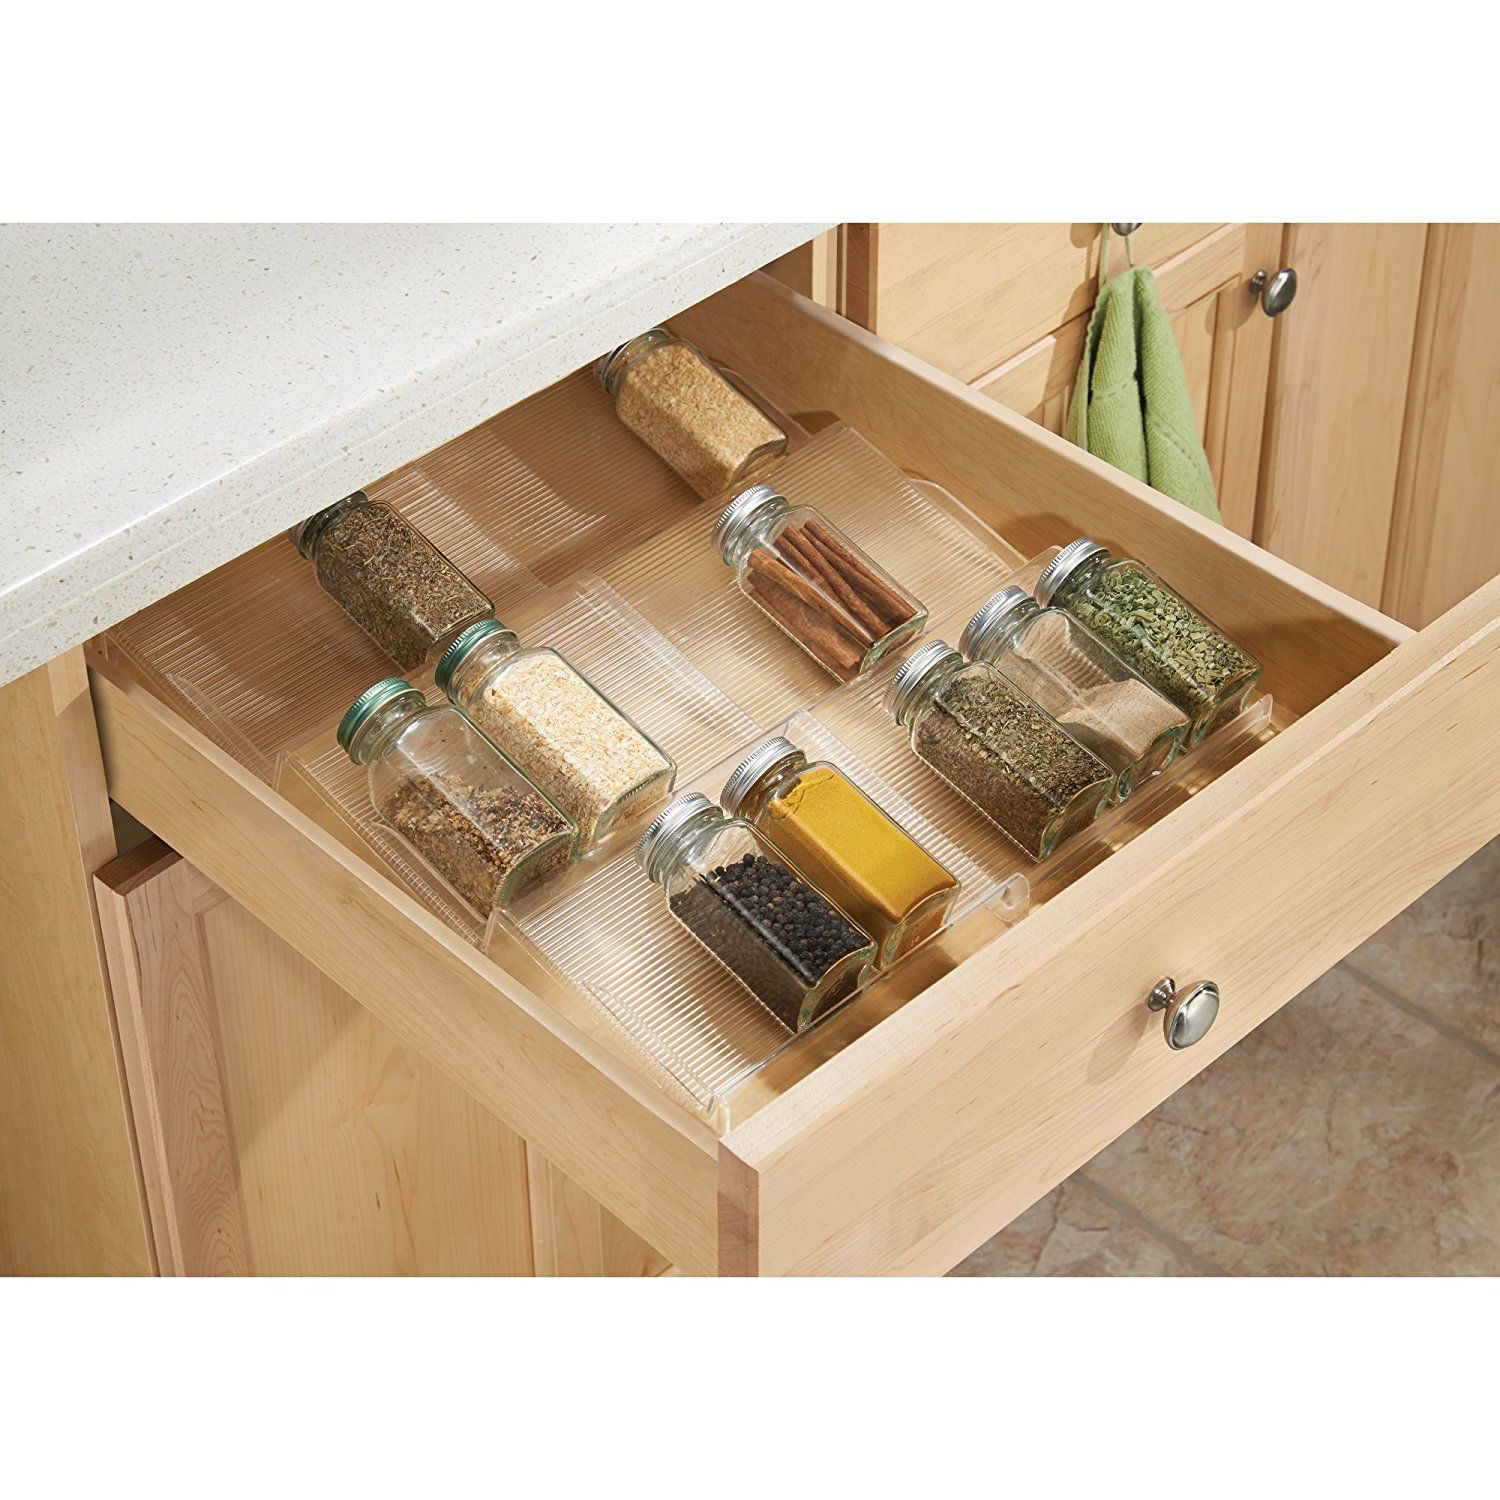 15 Best Spice Rack Ideas How To Organize Spices